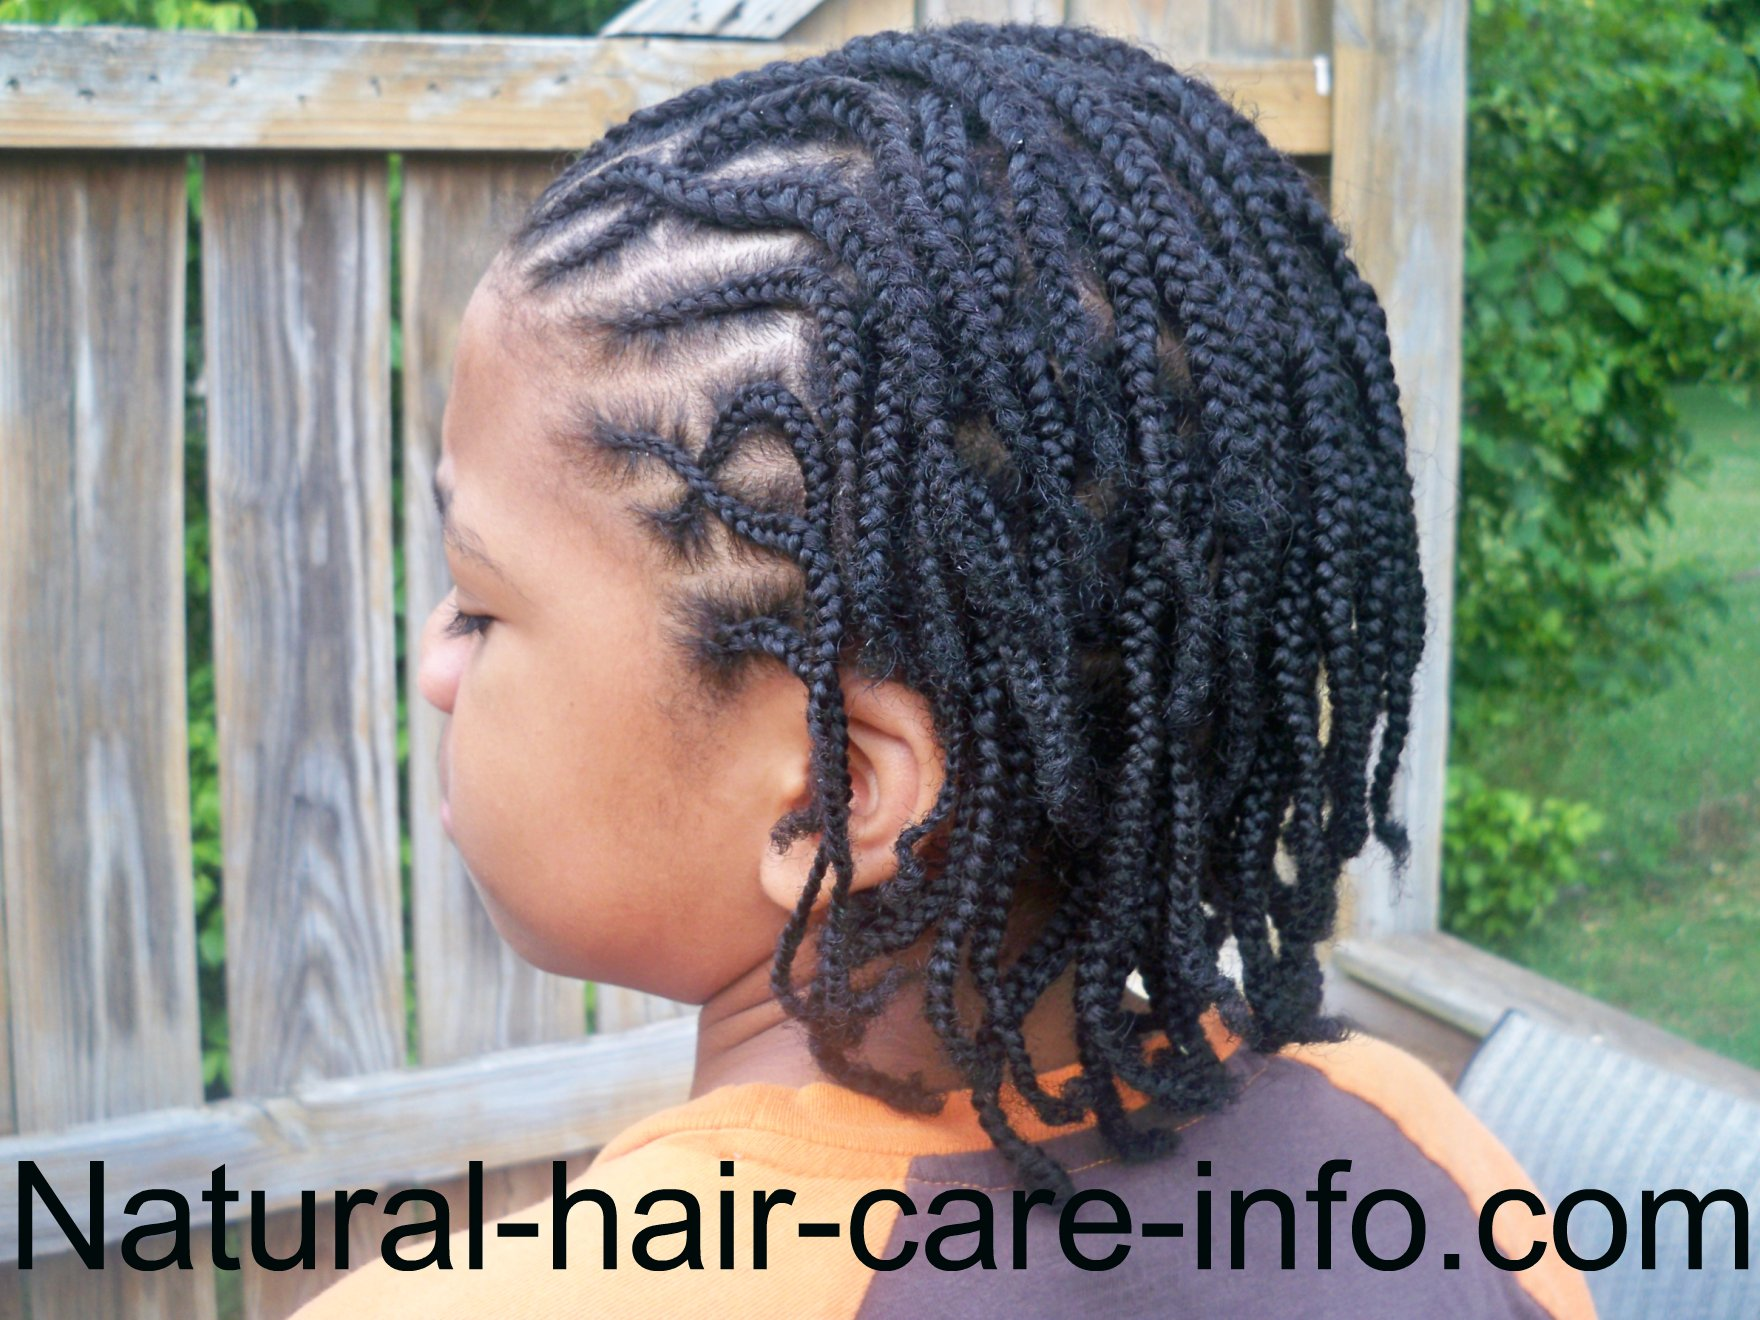 Phenomenal Braid Hairstyles For Men Complete List And Tutorials Hairstyles For Men Maxibearus